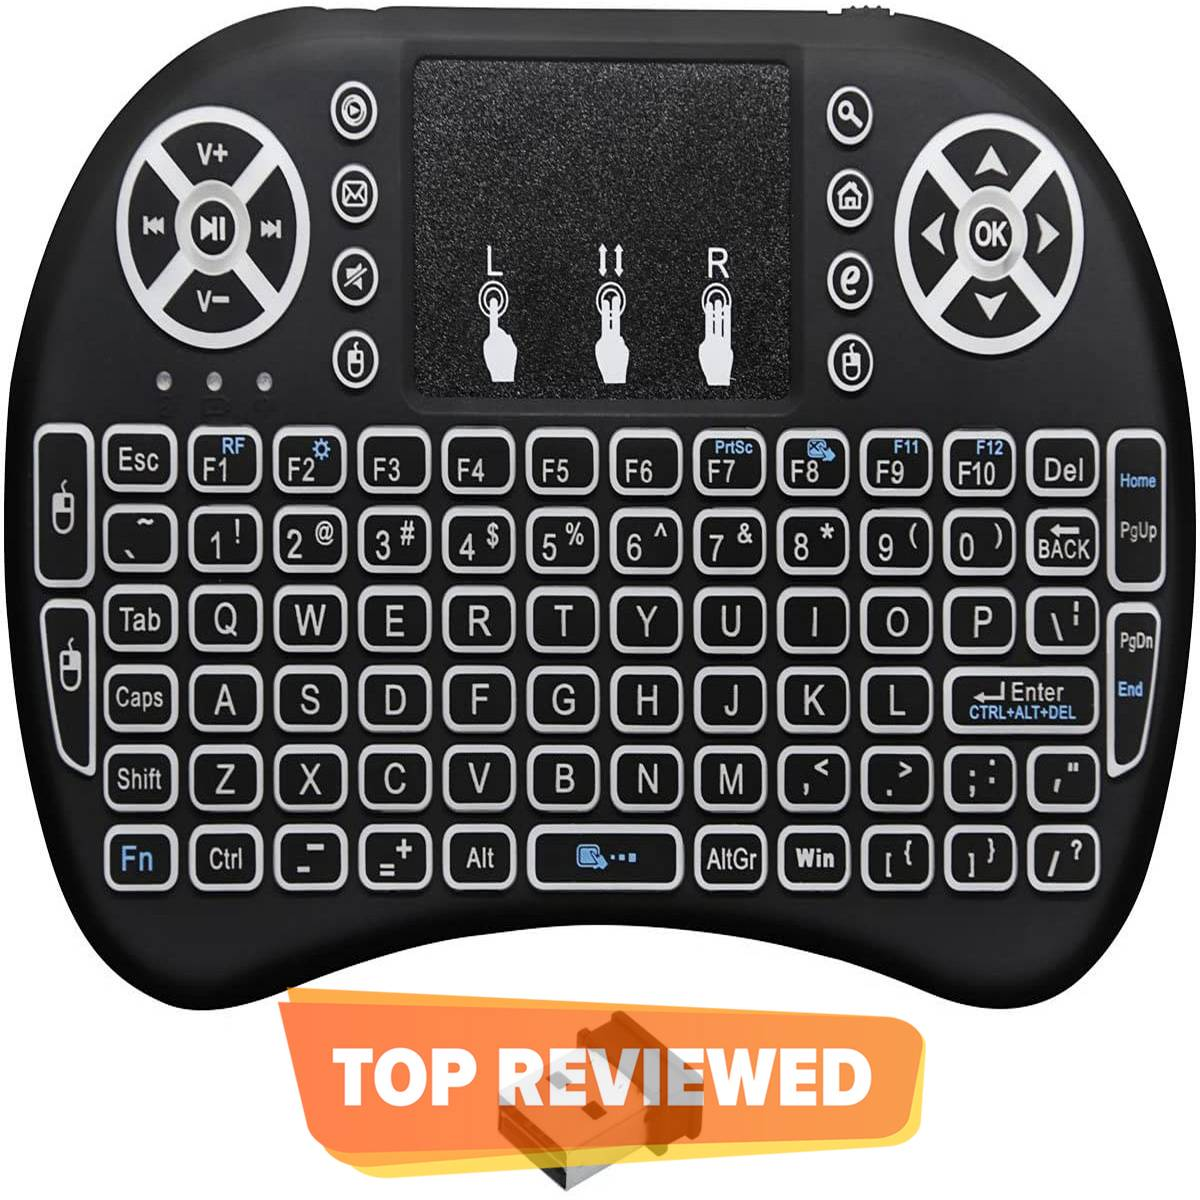 Mini Wireless Backlit Keyboard with Touchpad and Multimedia Keys for Android TV Box Smart TV